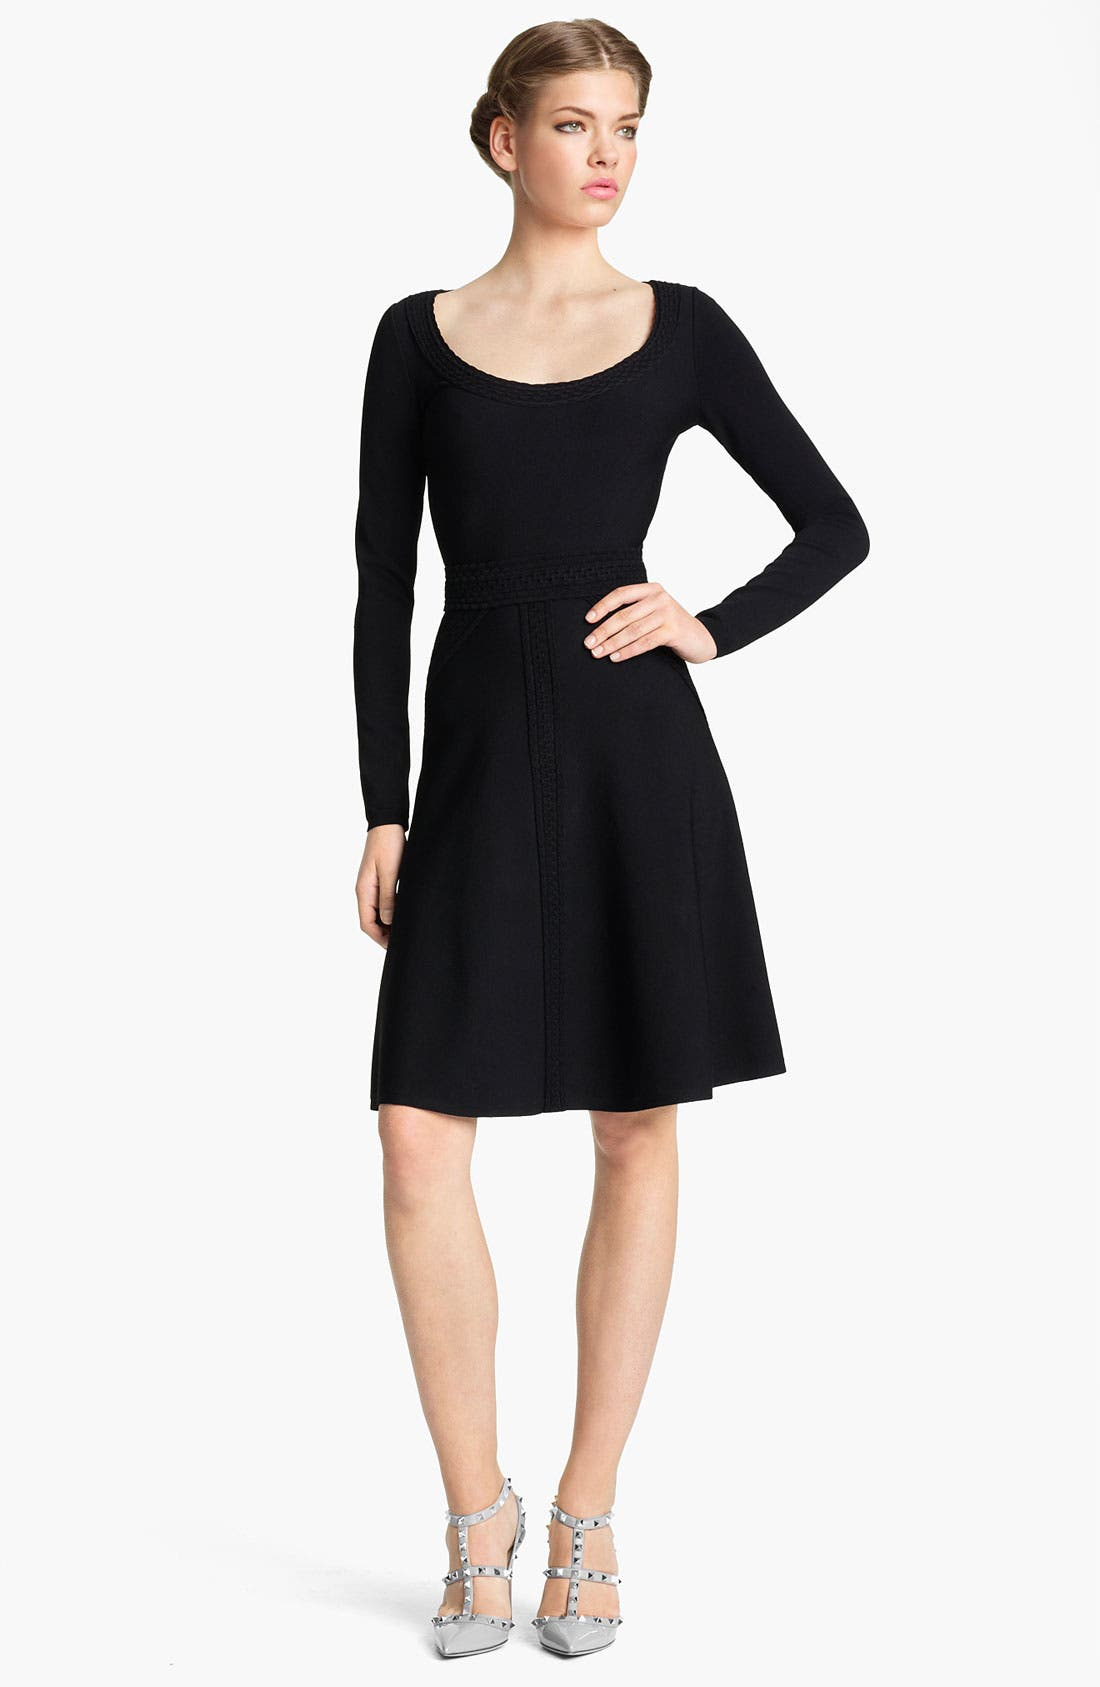 Alternate Image 1 Selected - Valentino Stretch Knit Dress